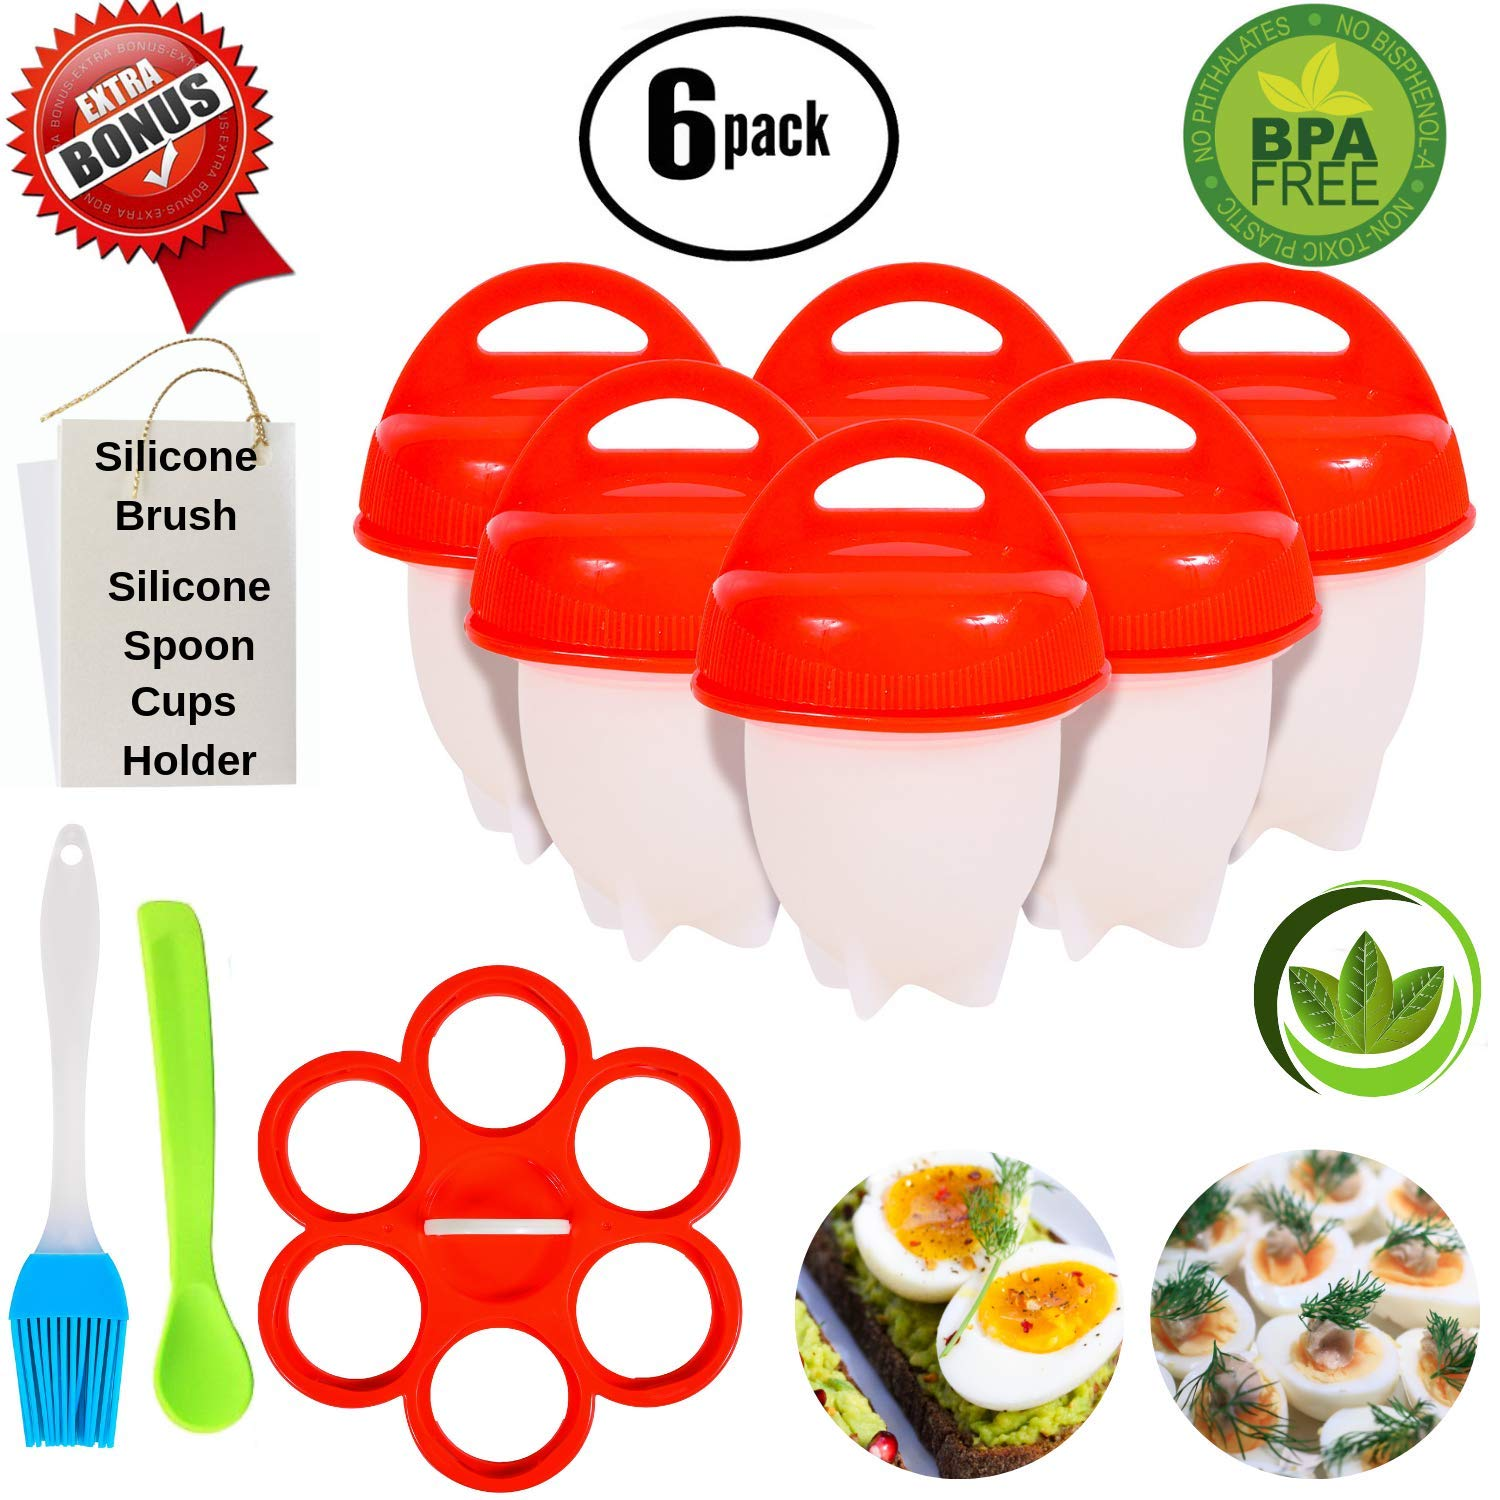 No.1 Hard Boiled Silicone Egg Cooker Without The Shell, Non Stick Egg Boil Poacher, As Seen On TV, With Bonus Holder & Silicone Oil Brush, (6pc), Red by Home City Market